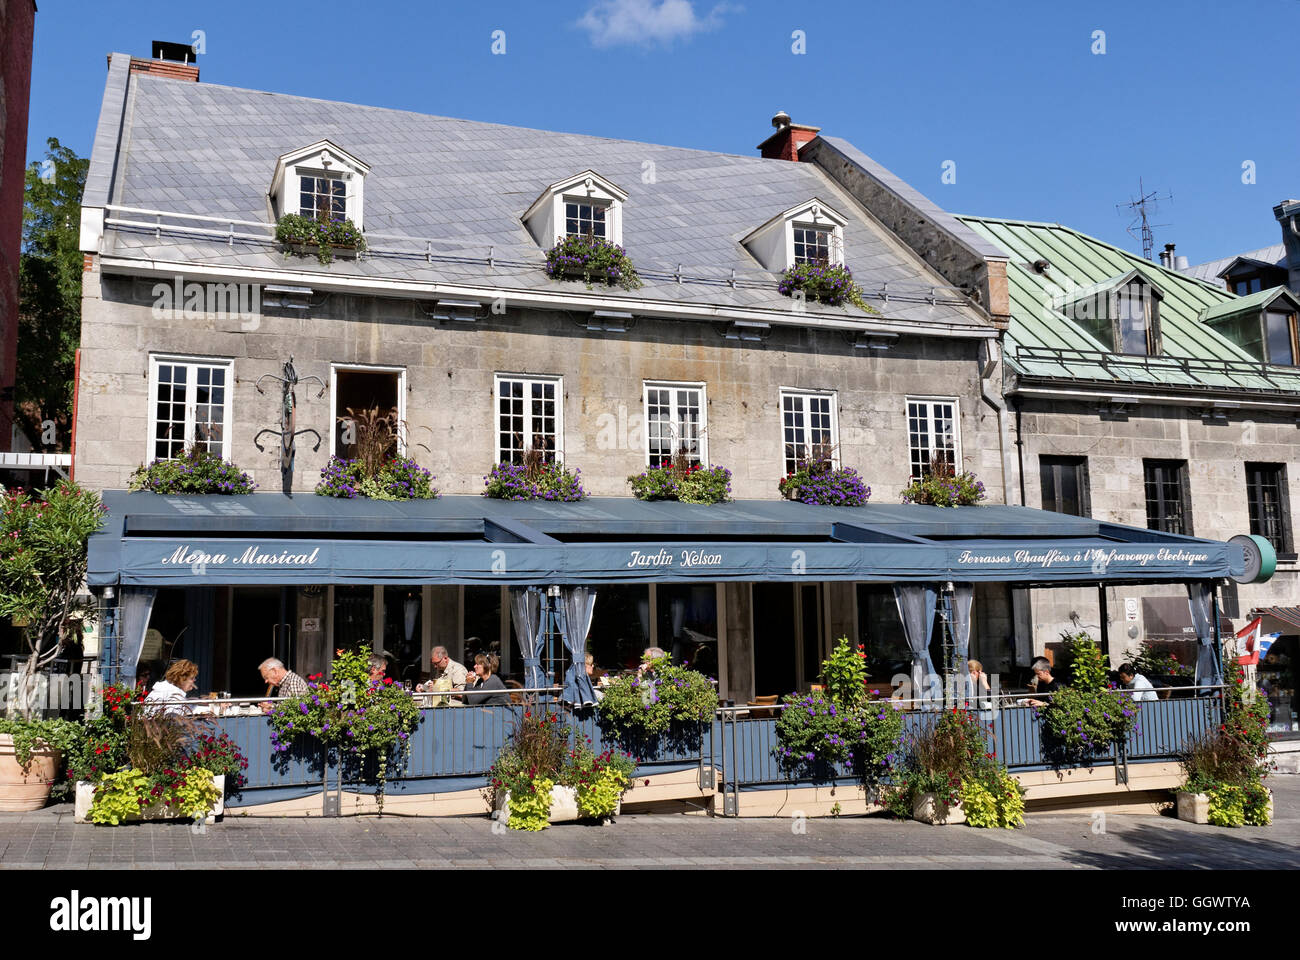 People Dining In The Jardin Nelson A French Restaurant On Place